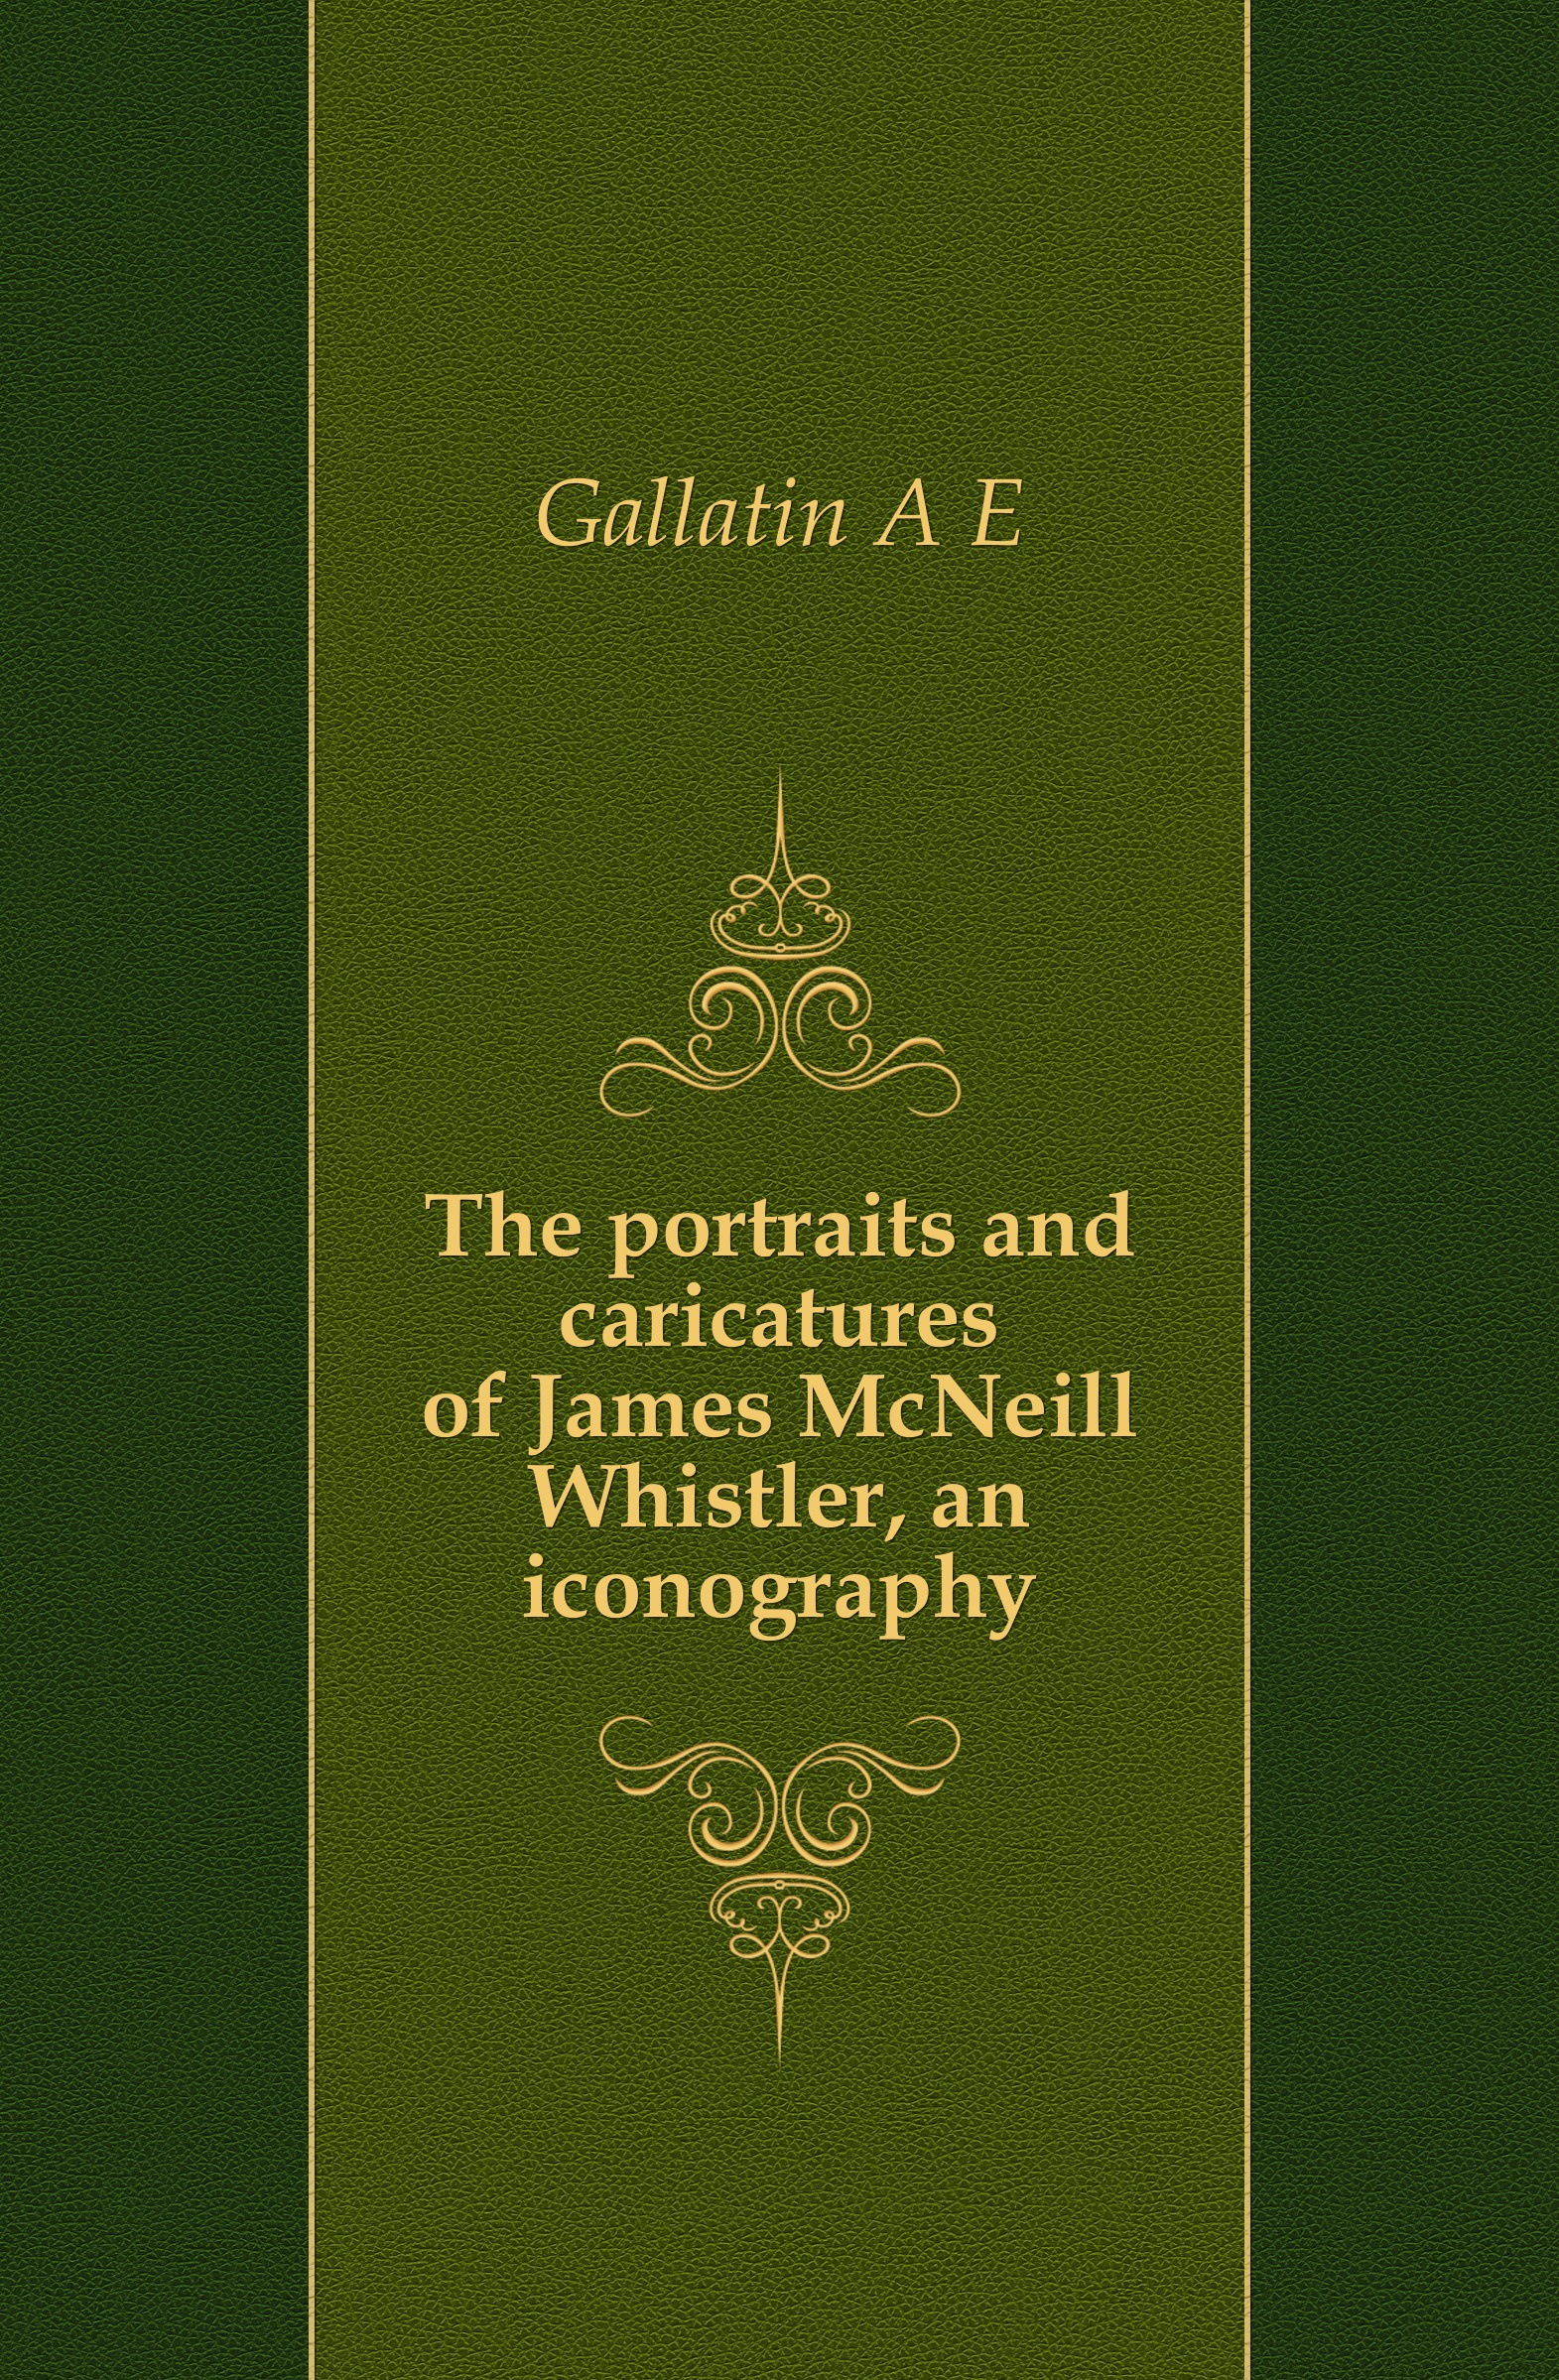 A. E. Gallatin The portraits and caricatures of James McNeill Whistler, an iconography цена